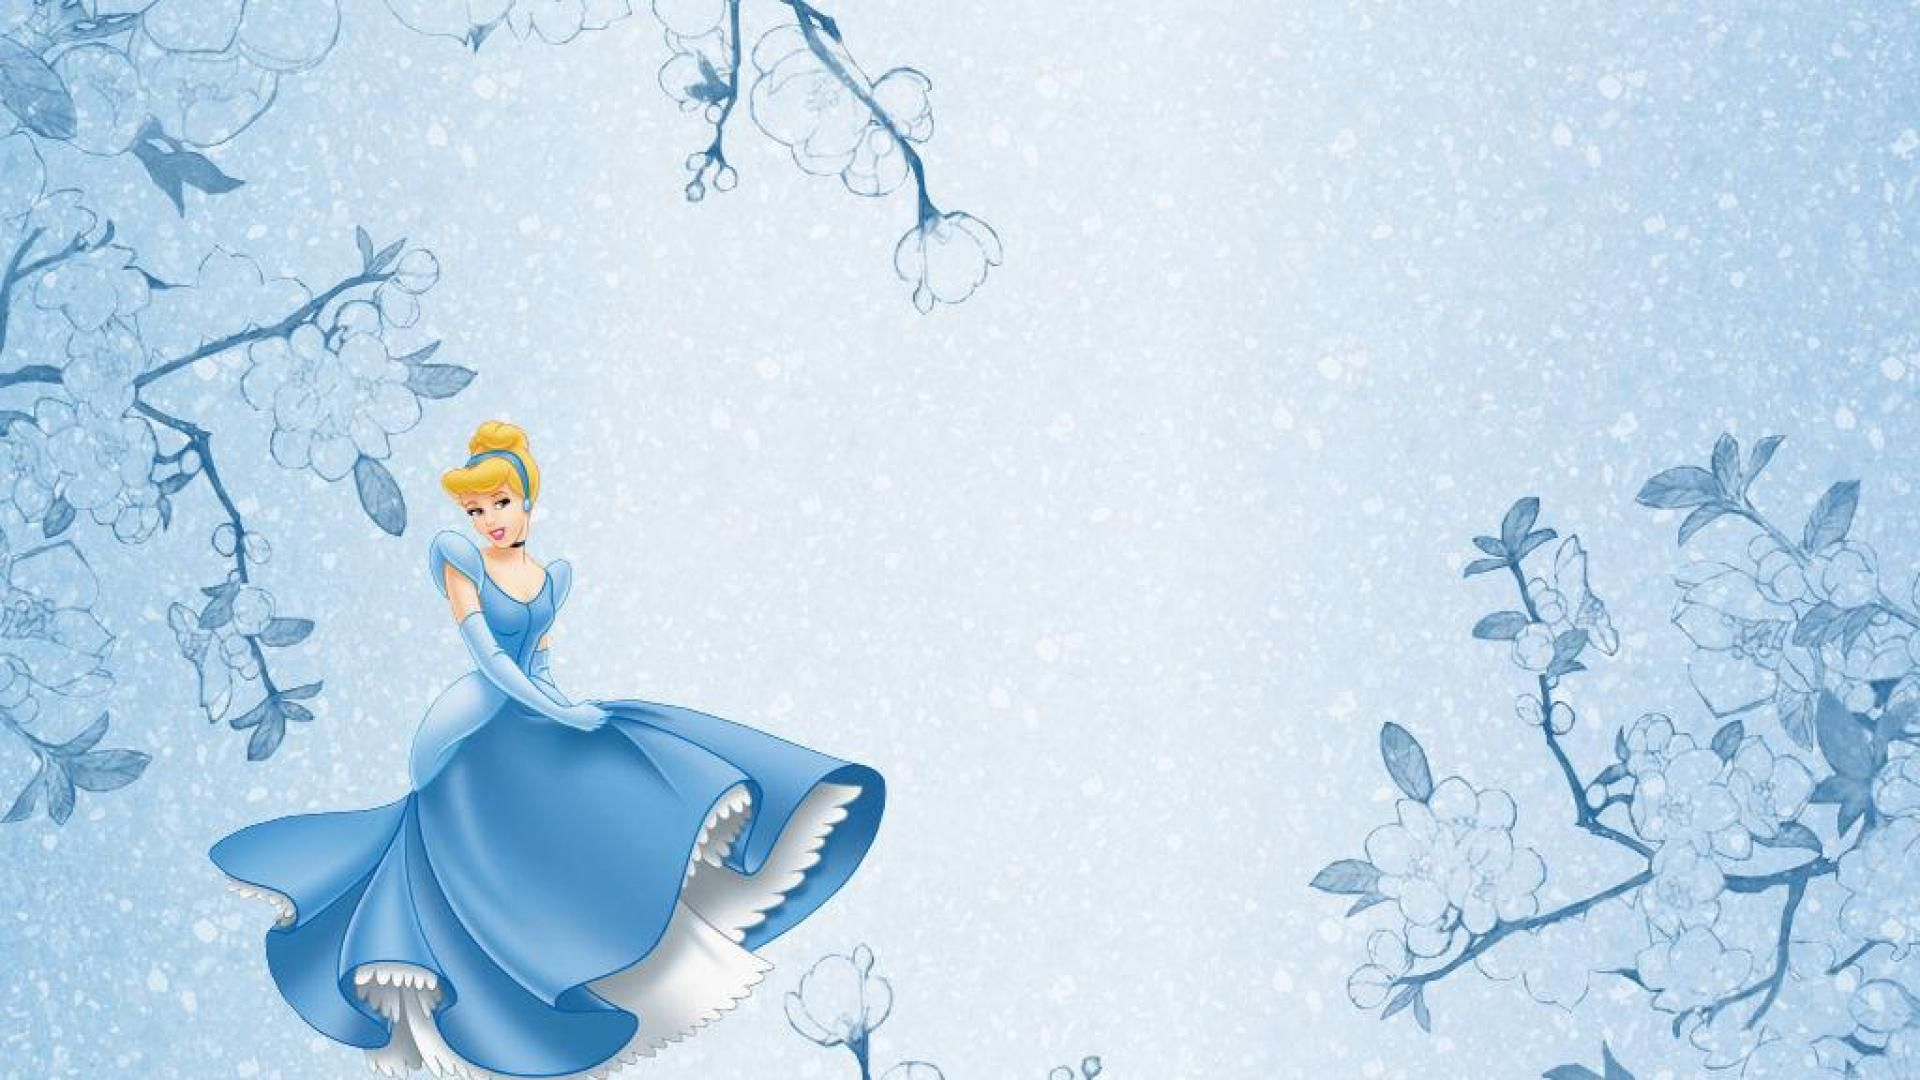 Cinderella wallpapers best wallpapers disney pinterest cinderella wallpaper thecheapjerseys